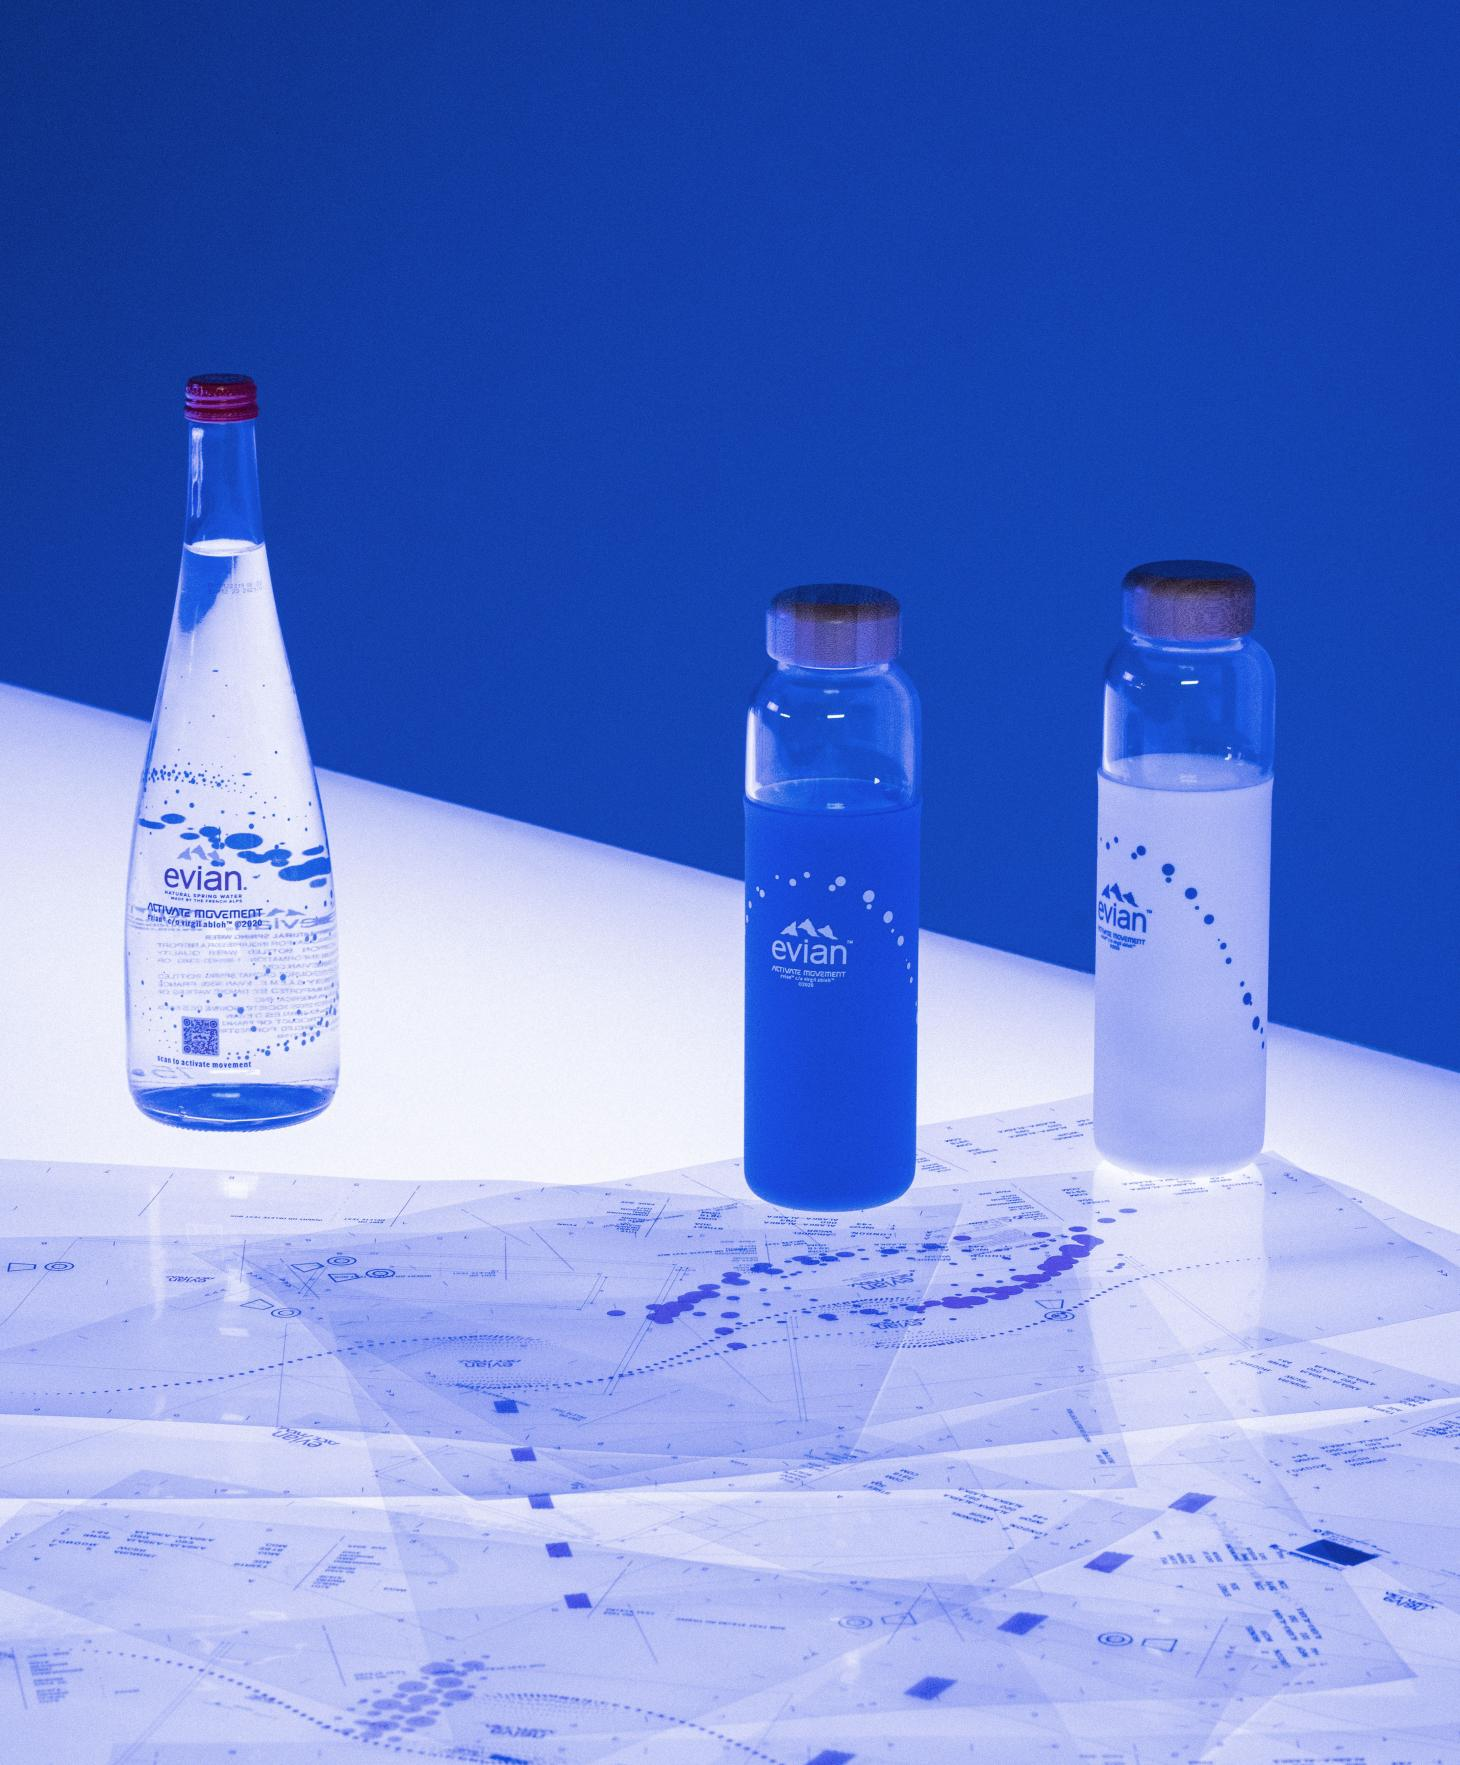 Evian Activate Movement campaign bottles and design